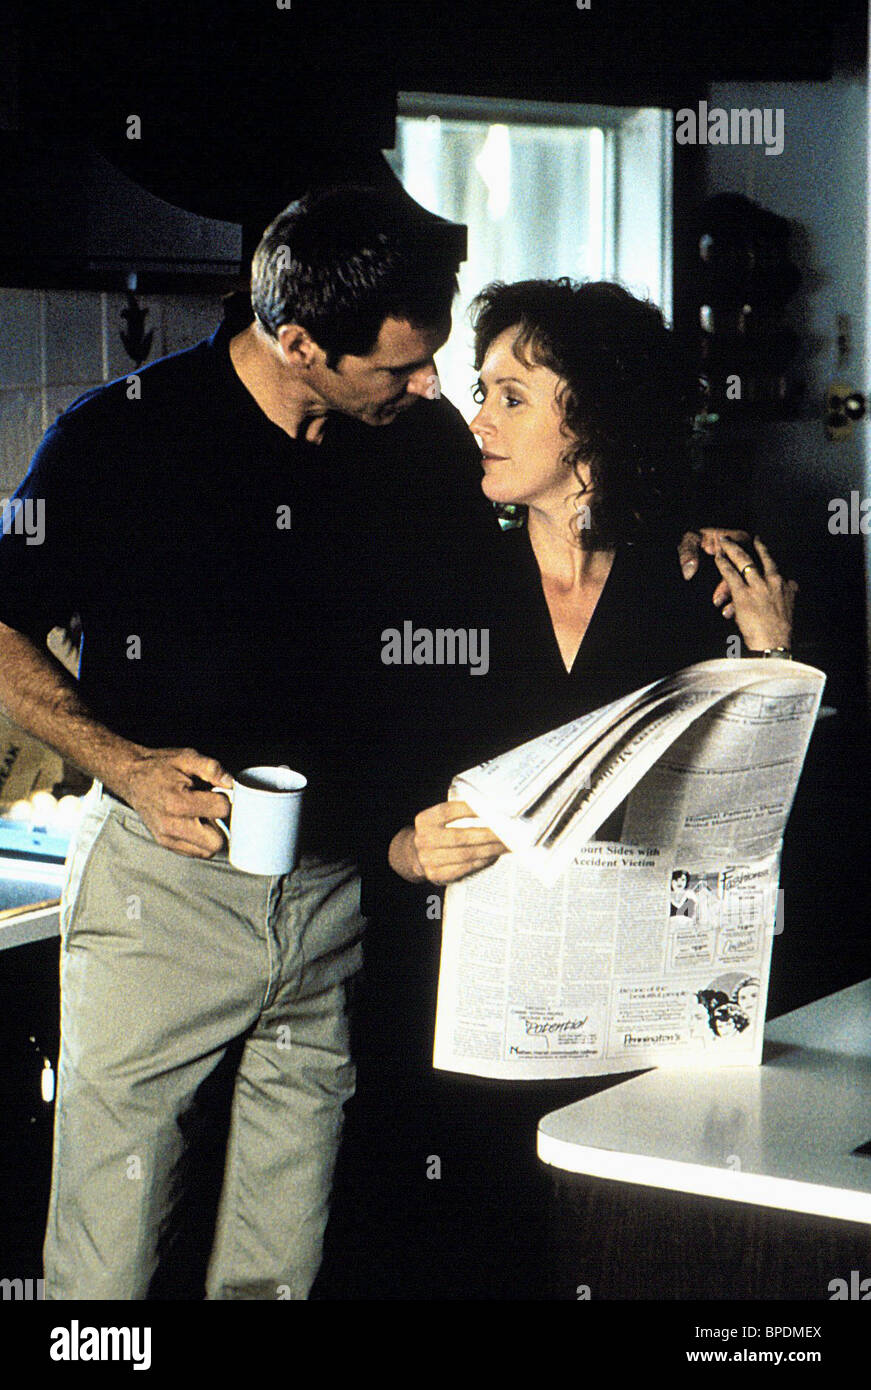 HARRISON FORD U0026 BONNIE BEDELIA PRESUMED INNOCENT (1990